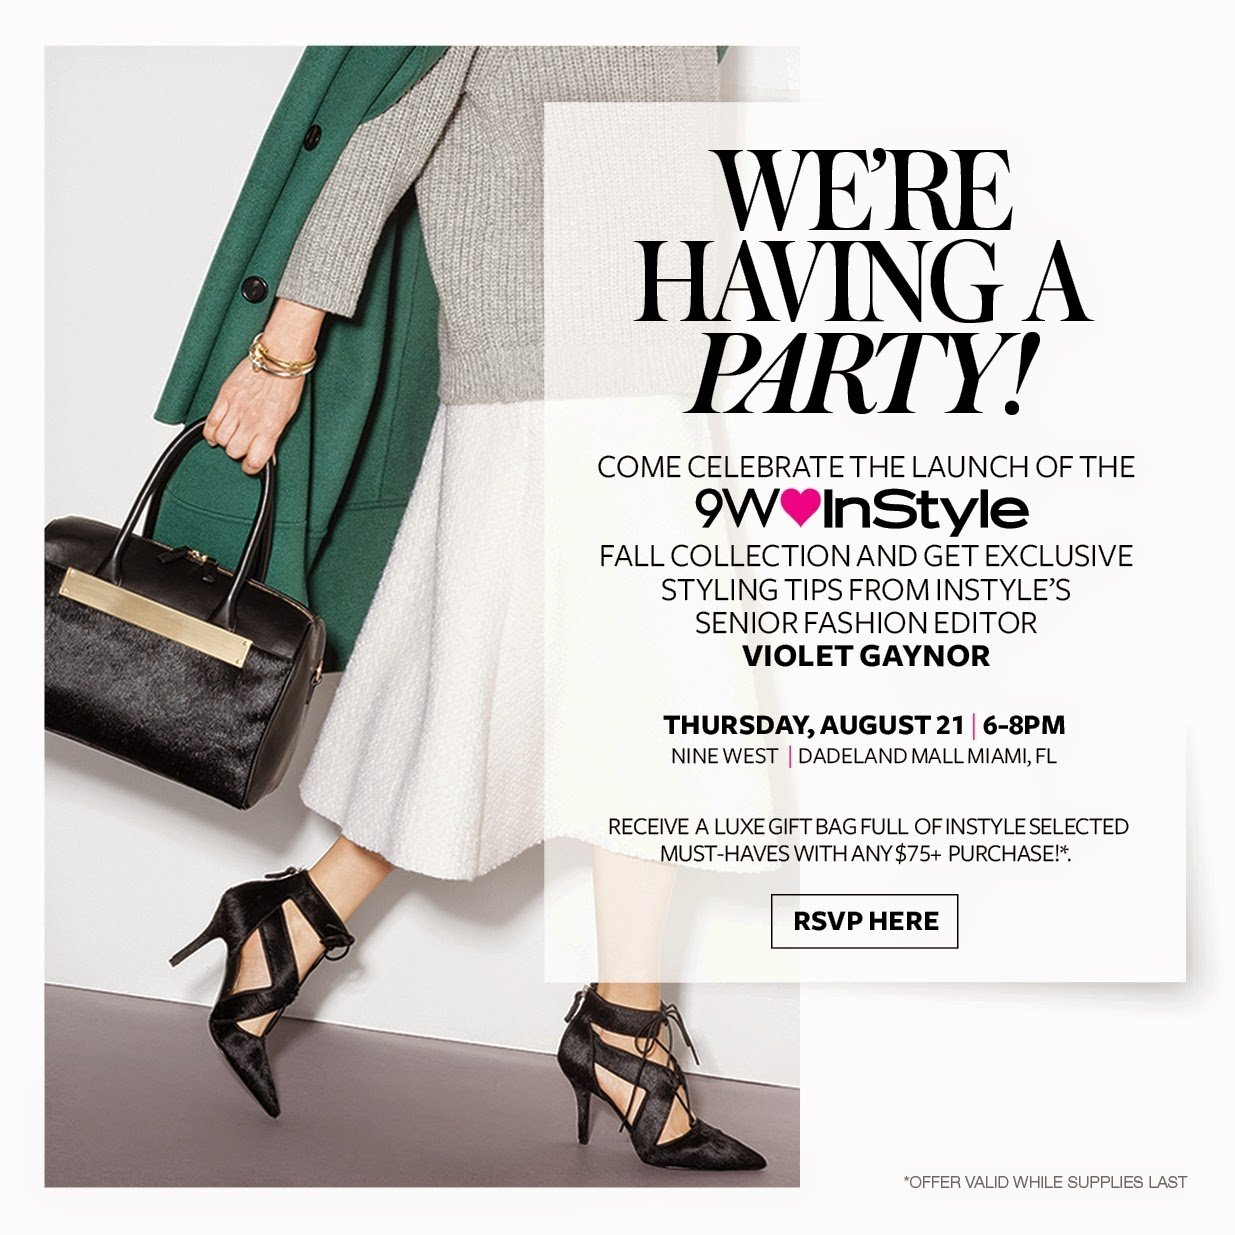 Nine West & InStyle Magazine Launch Party at Dadeland Mall